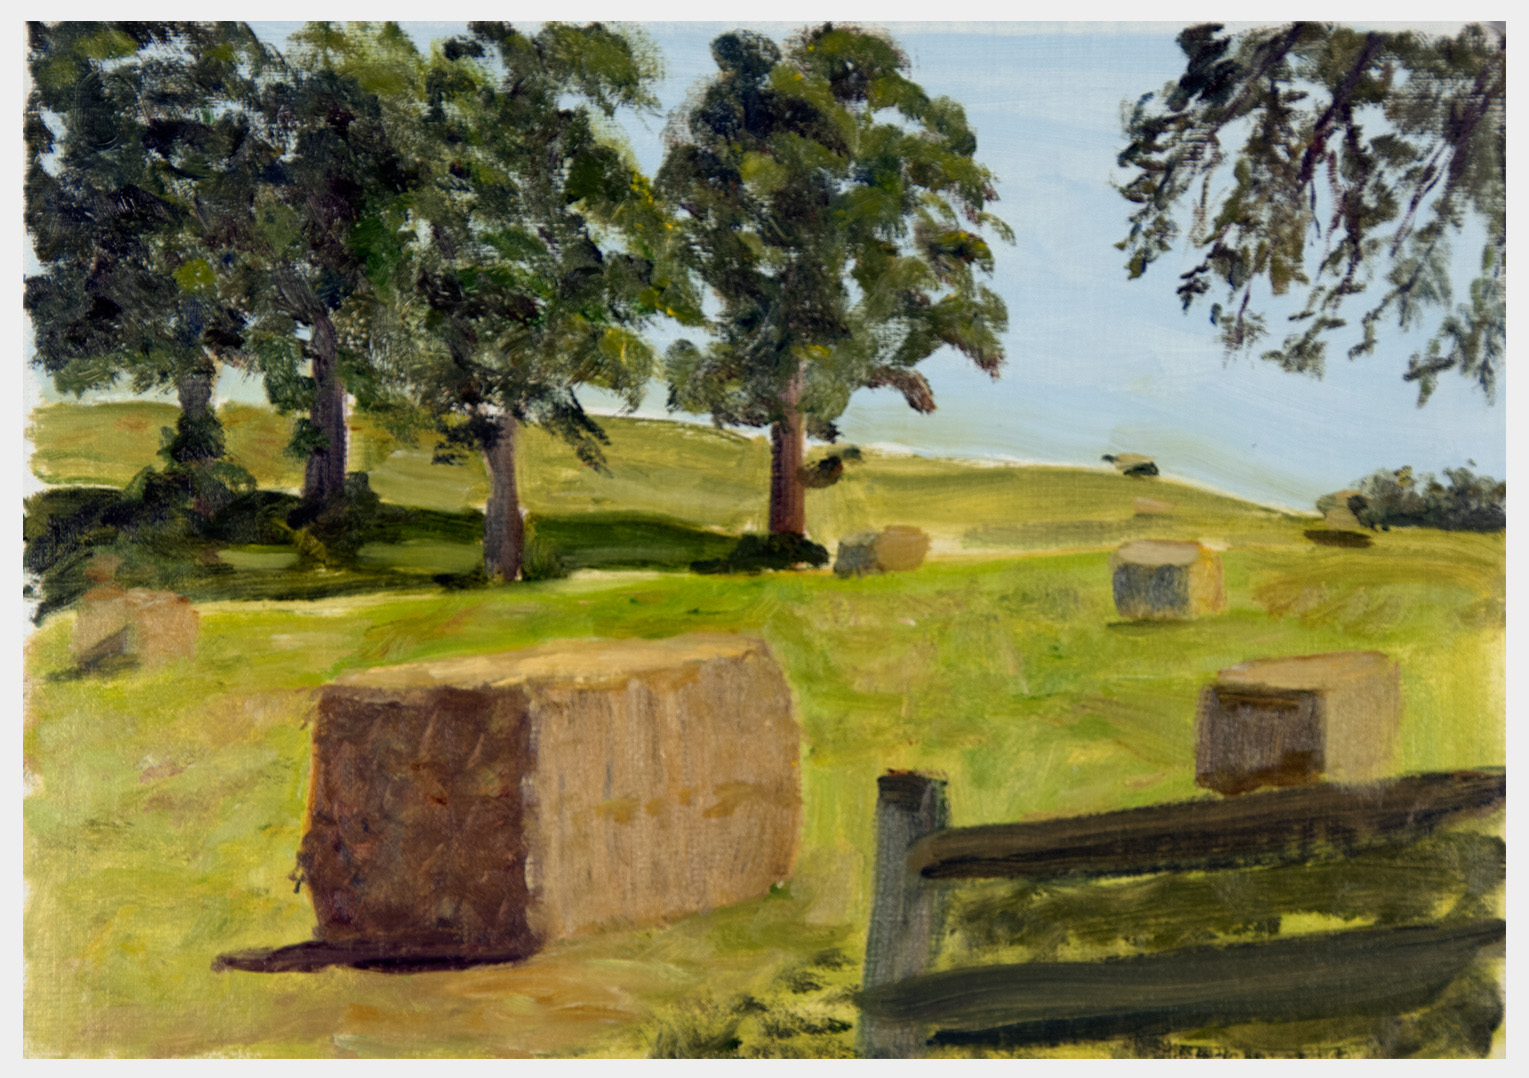 Realistically painted large hay bales in a fenced field with few trees providing shade in the noon-day sun